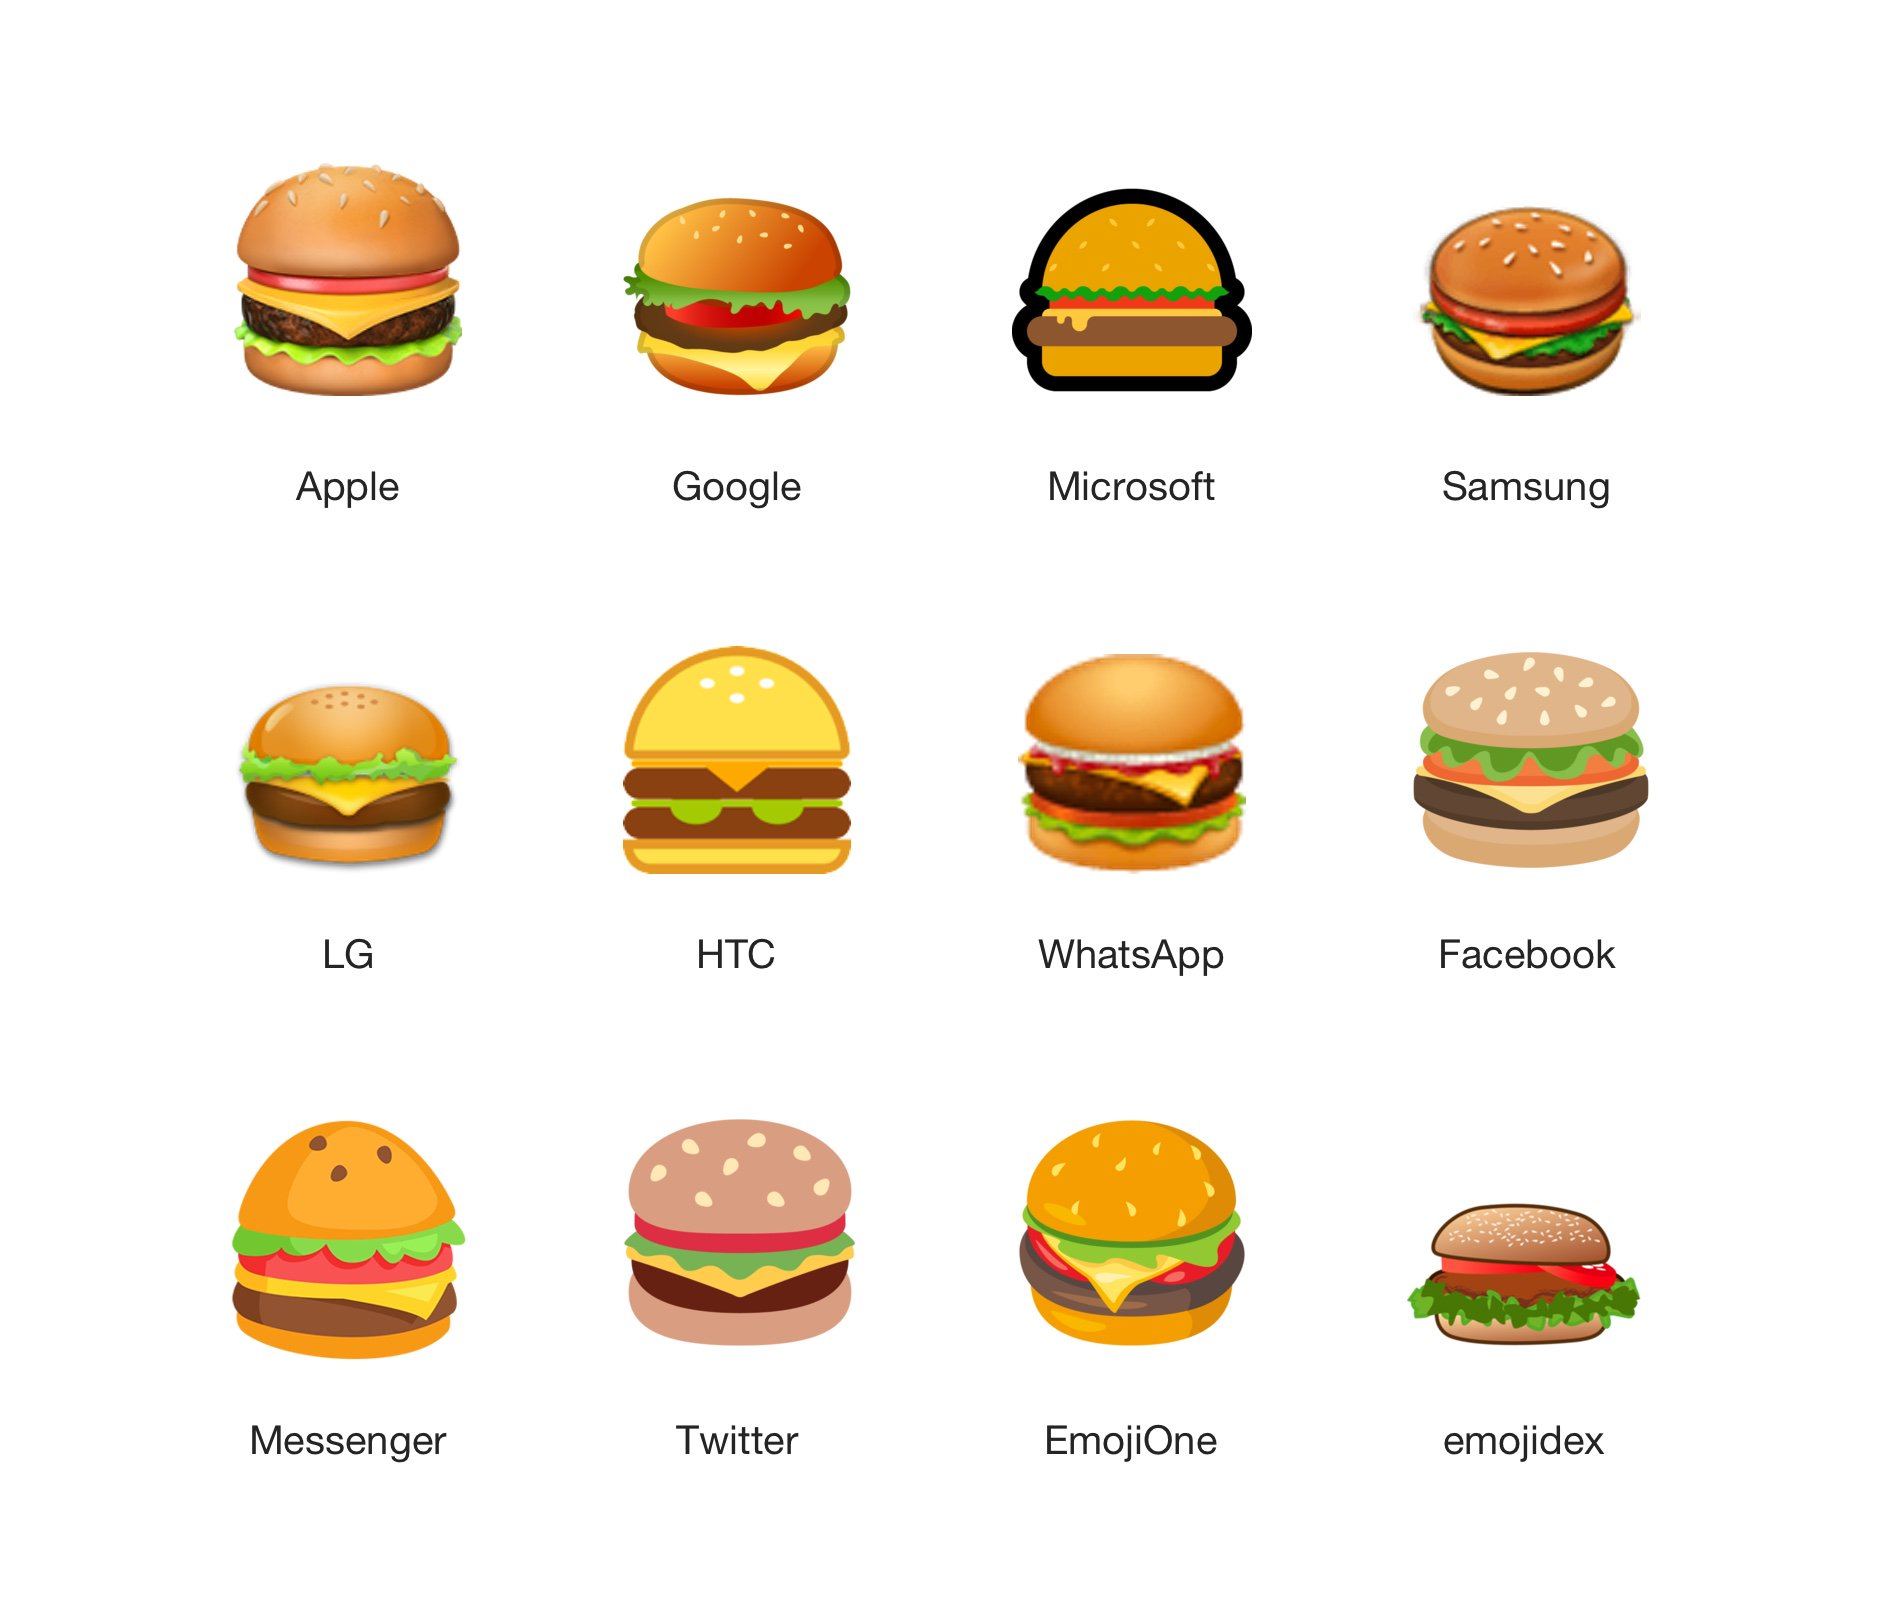 Google fixes cheeseburger emoji faux pas